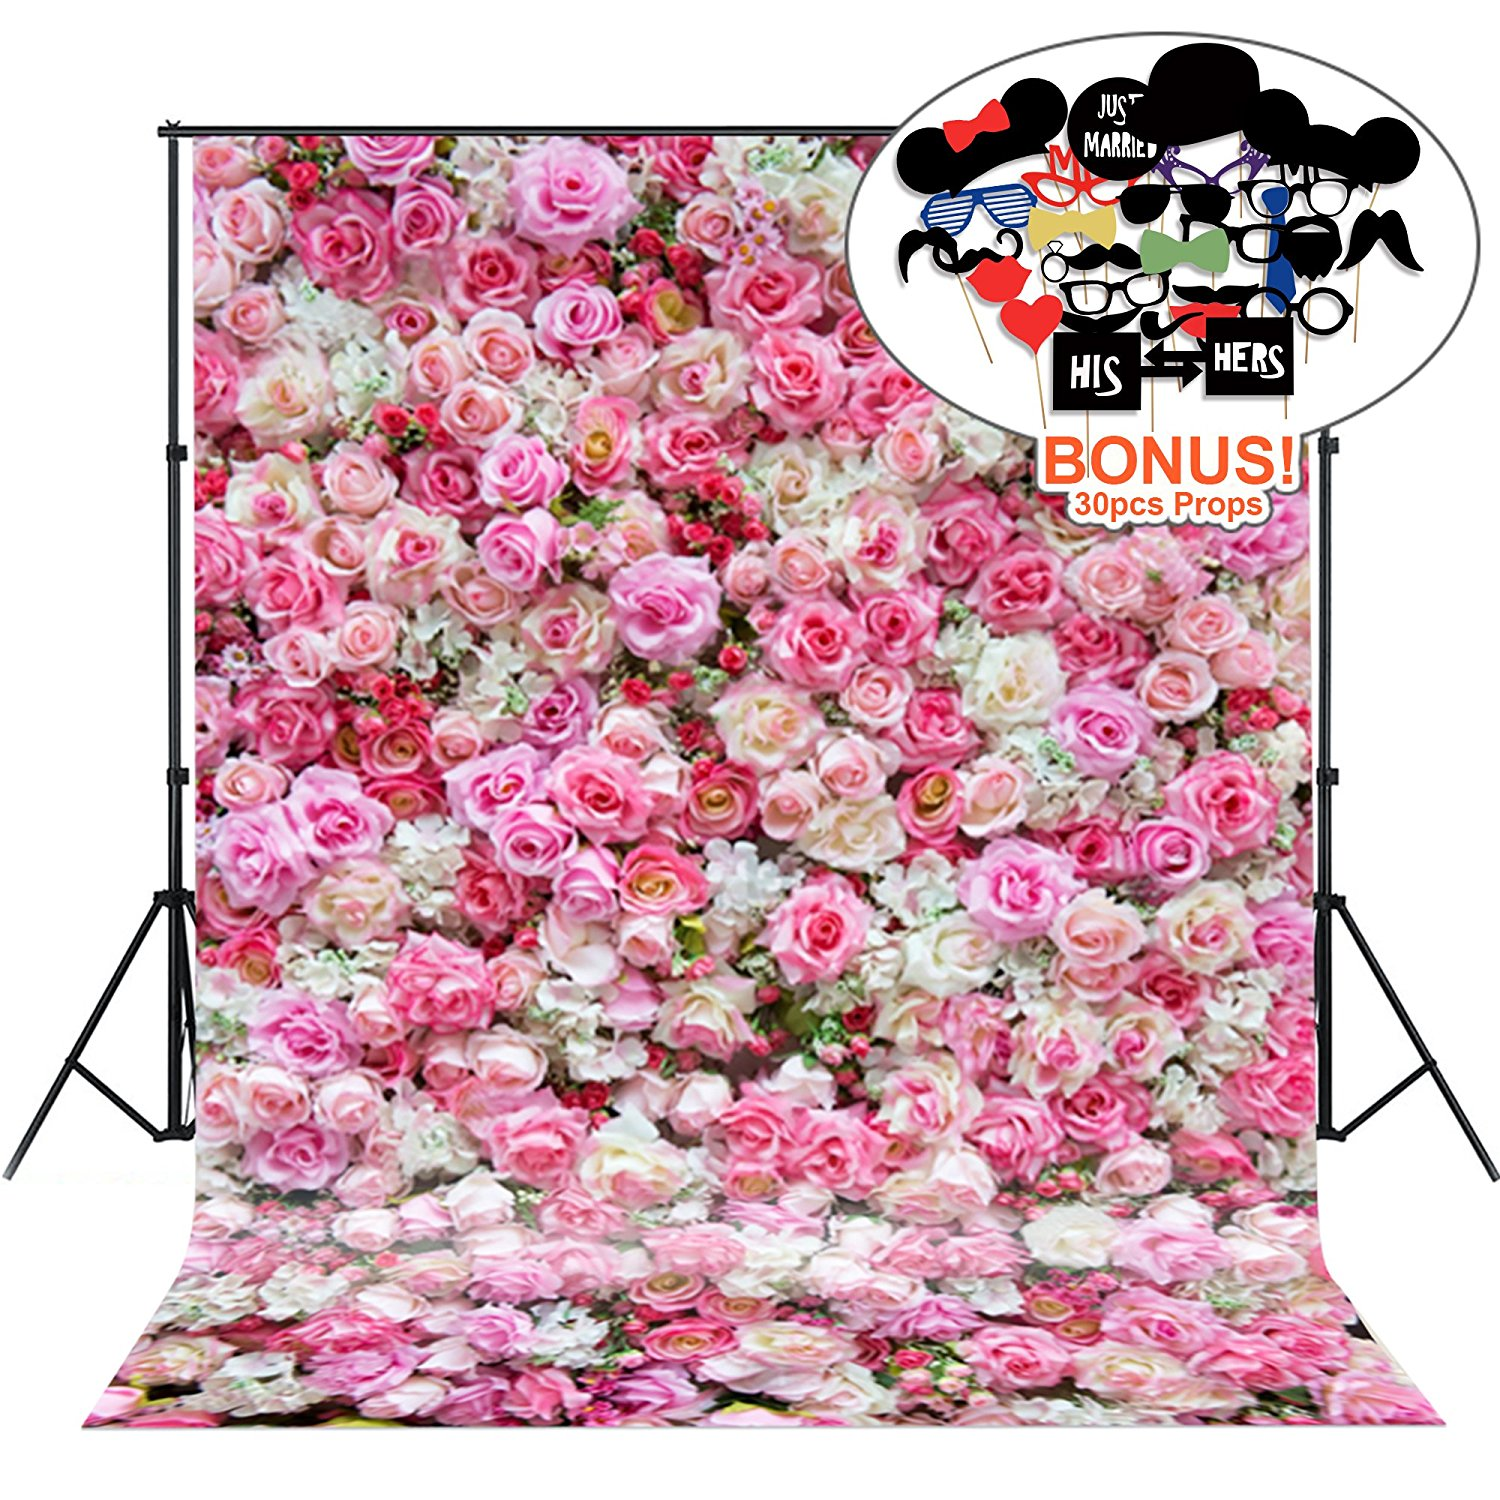 Photo Backgrounds with Photo Booth Props, MeeQee 5X7ft Photography Backdrop Pink Red Rose Flowers Spring Photography Background for Wedding, Party, Mother's Day, Baby Shower, MQ-VA3